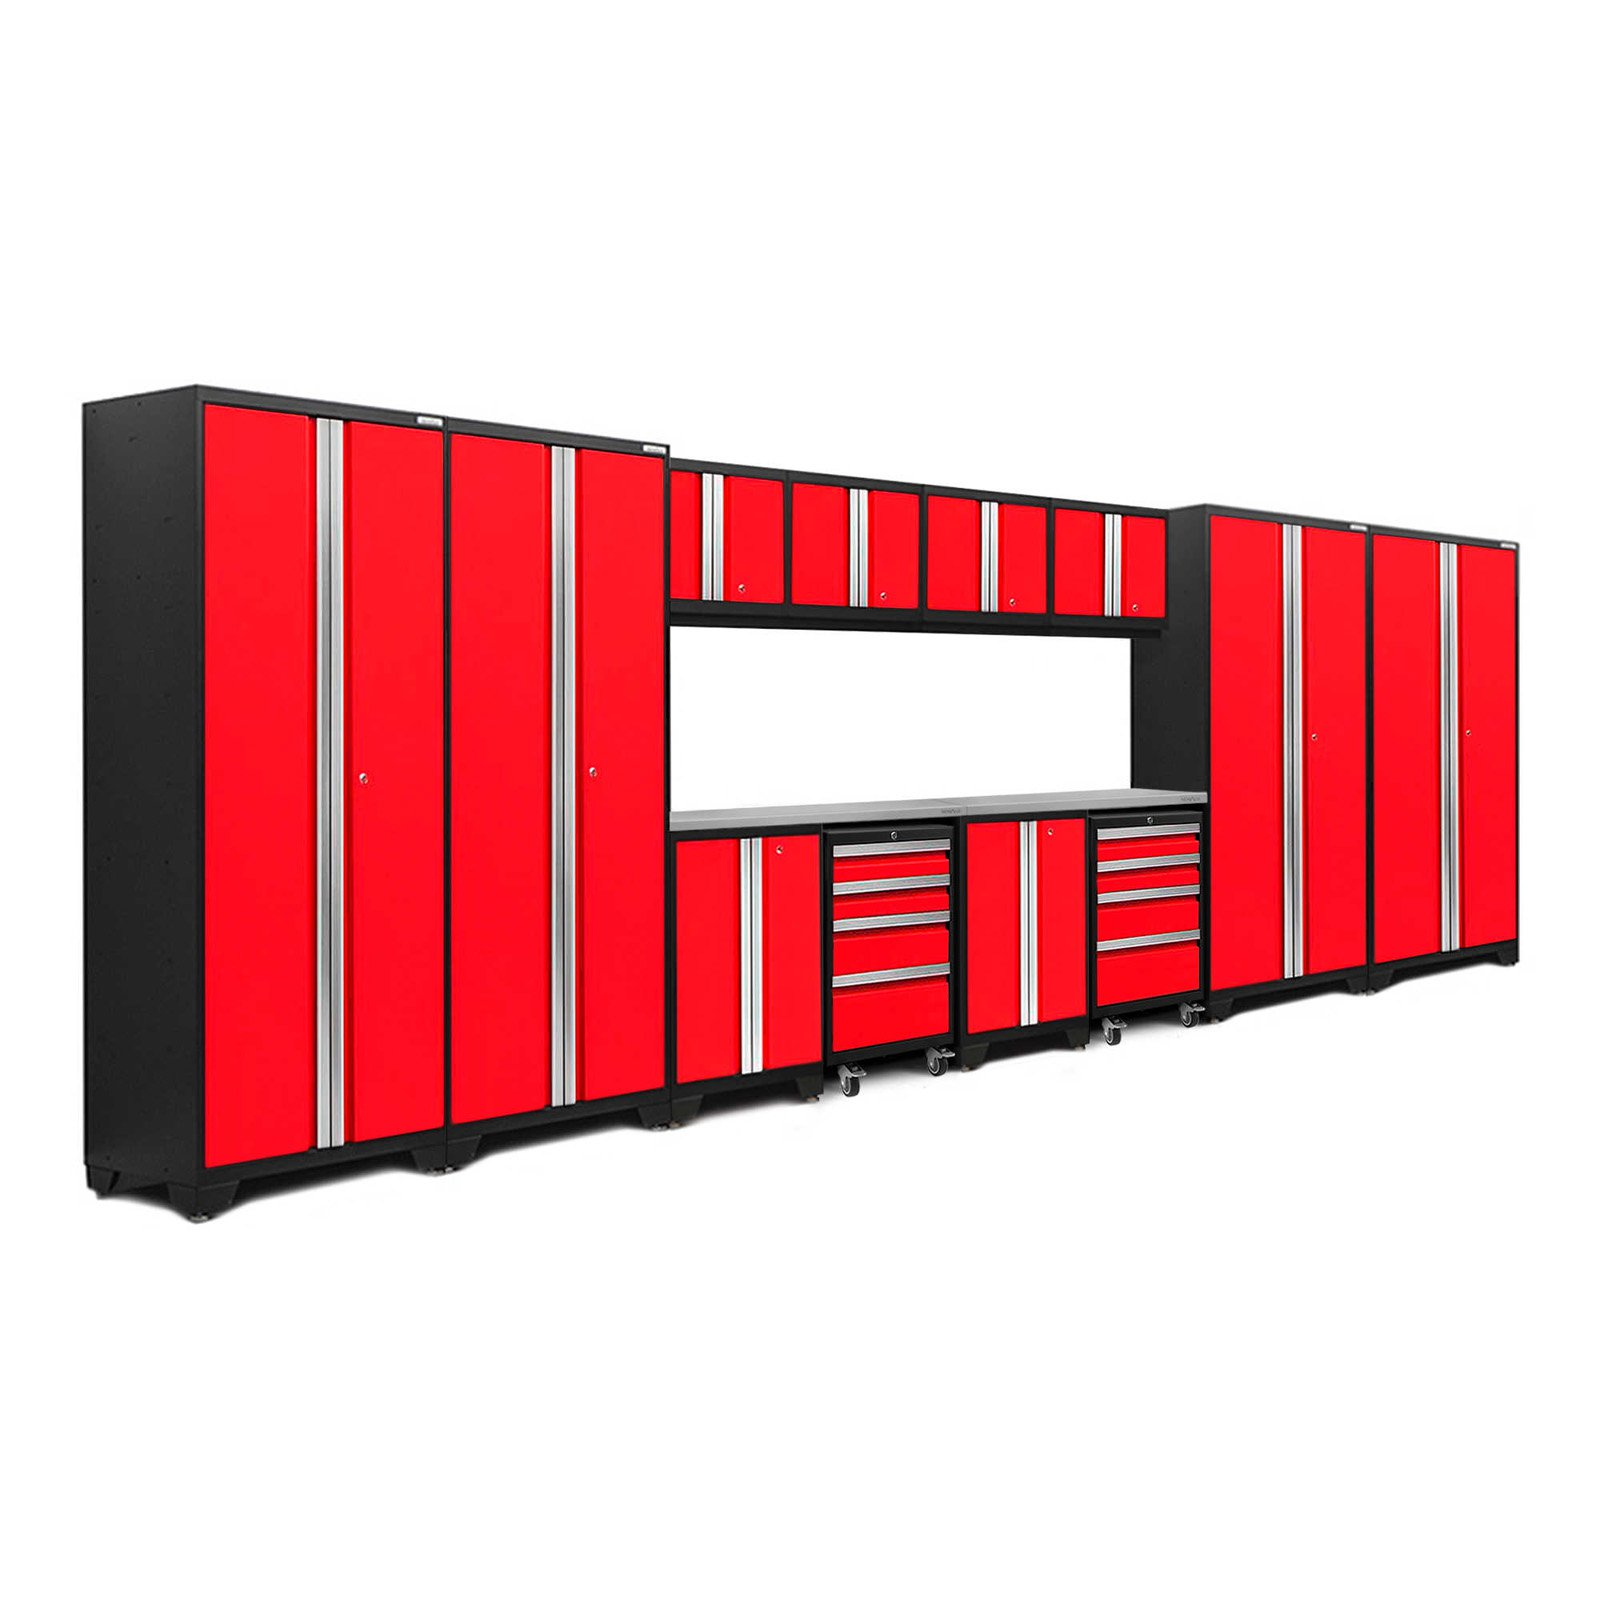 NewAge Products Bold 3.0 14 Piece Garage Cabinet System